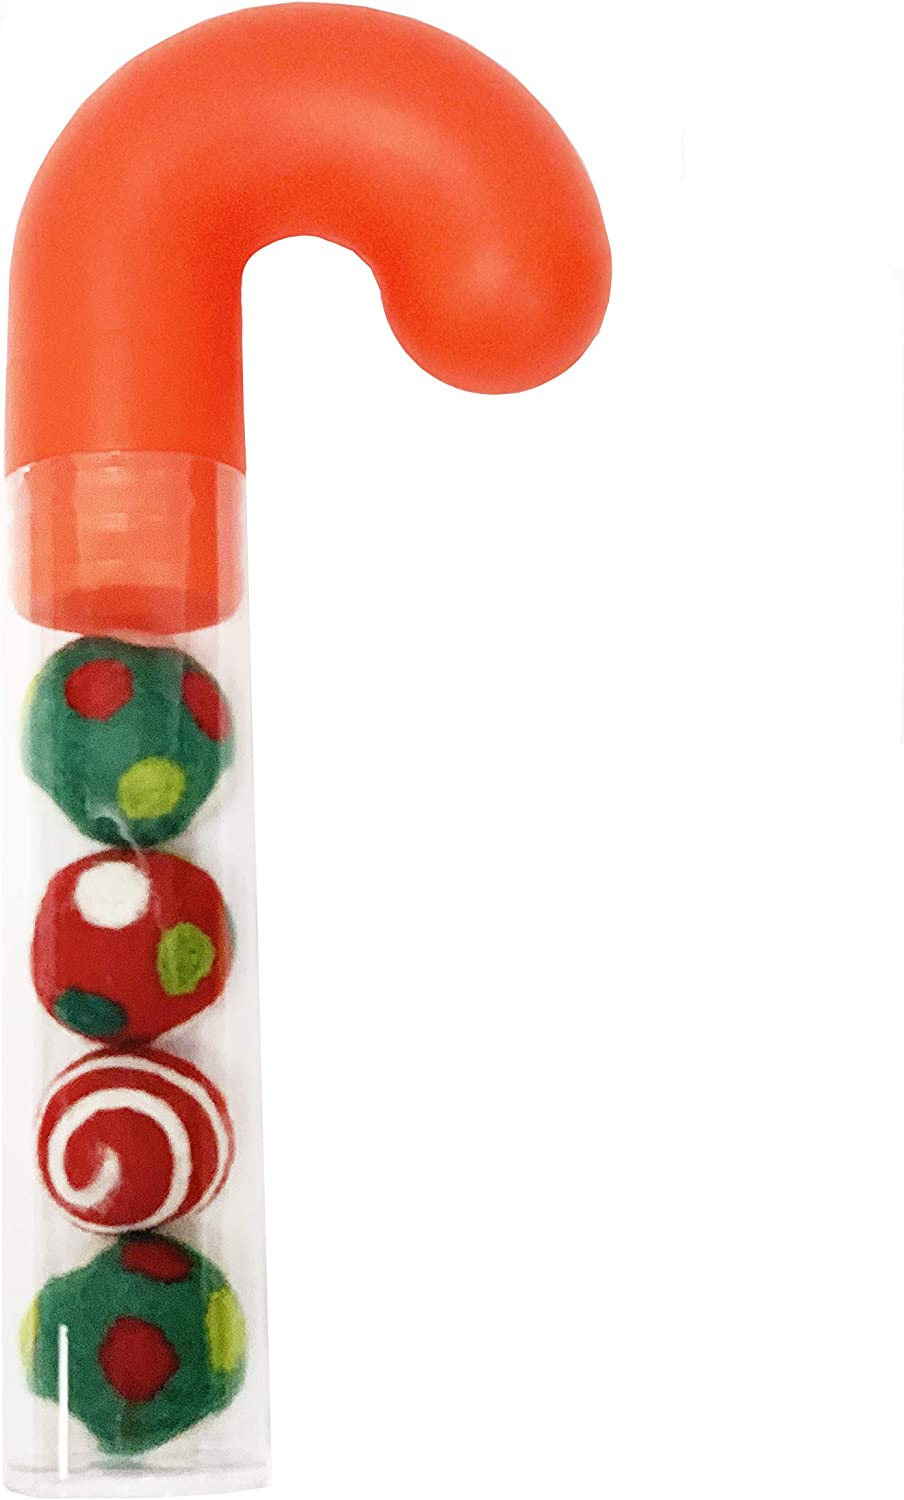 Designs Candy Cane Wool Ball Filled Cat Toys